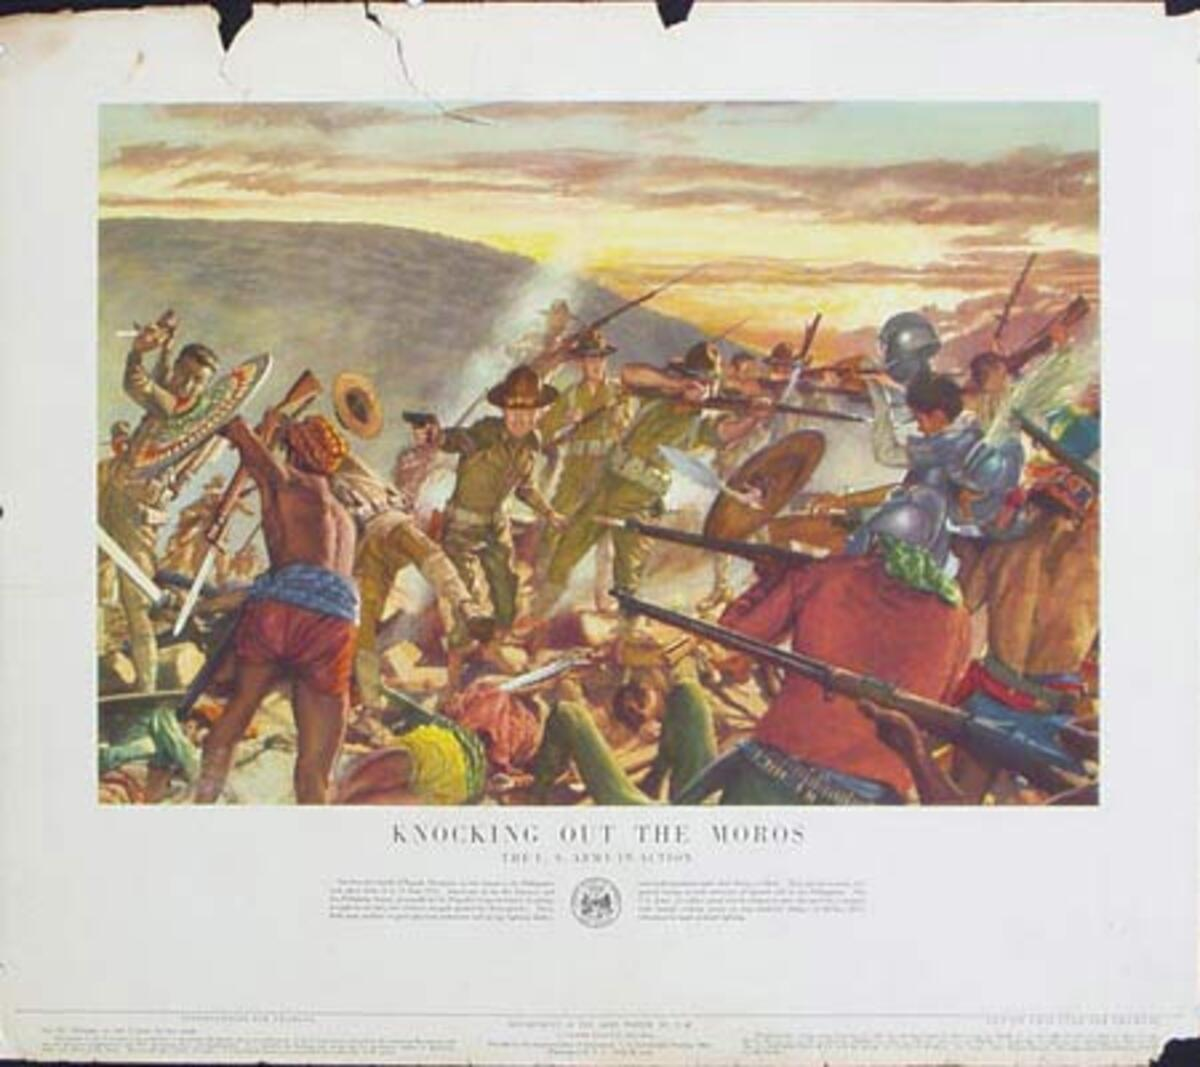 Knocking Out the Moros U.S. Army in Action Original Vintage Army Propaganda Poster